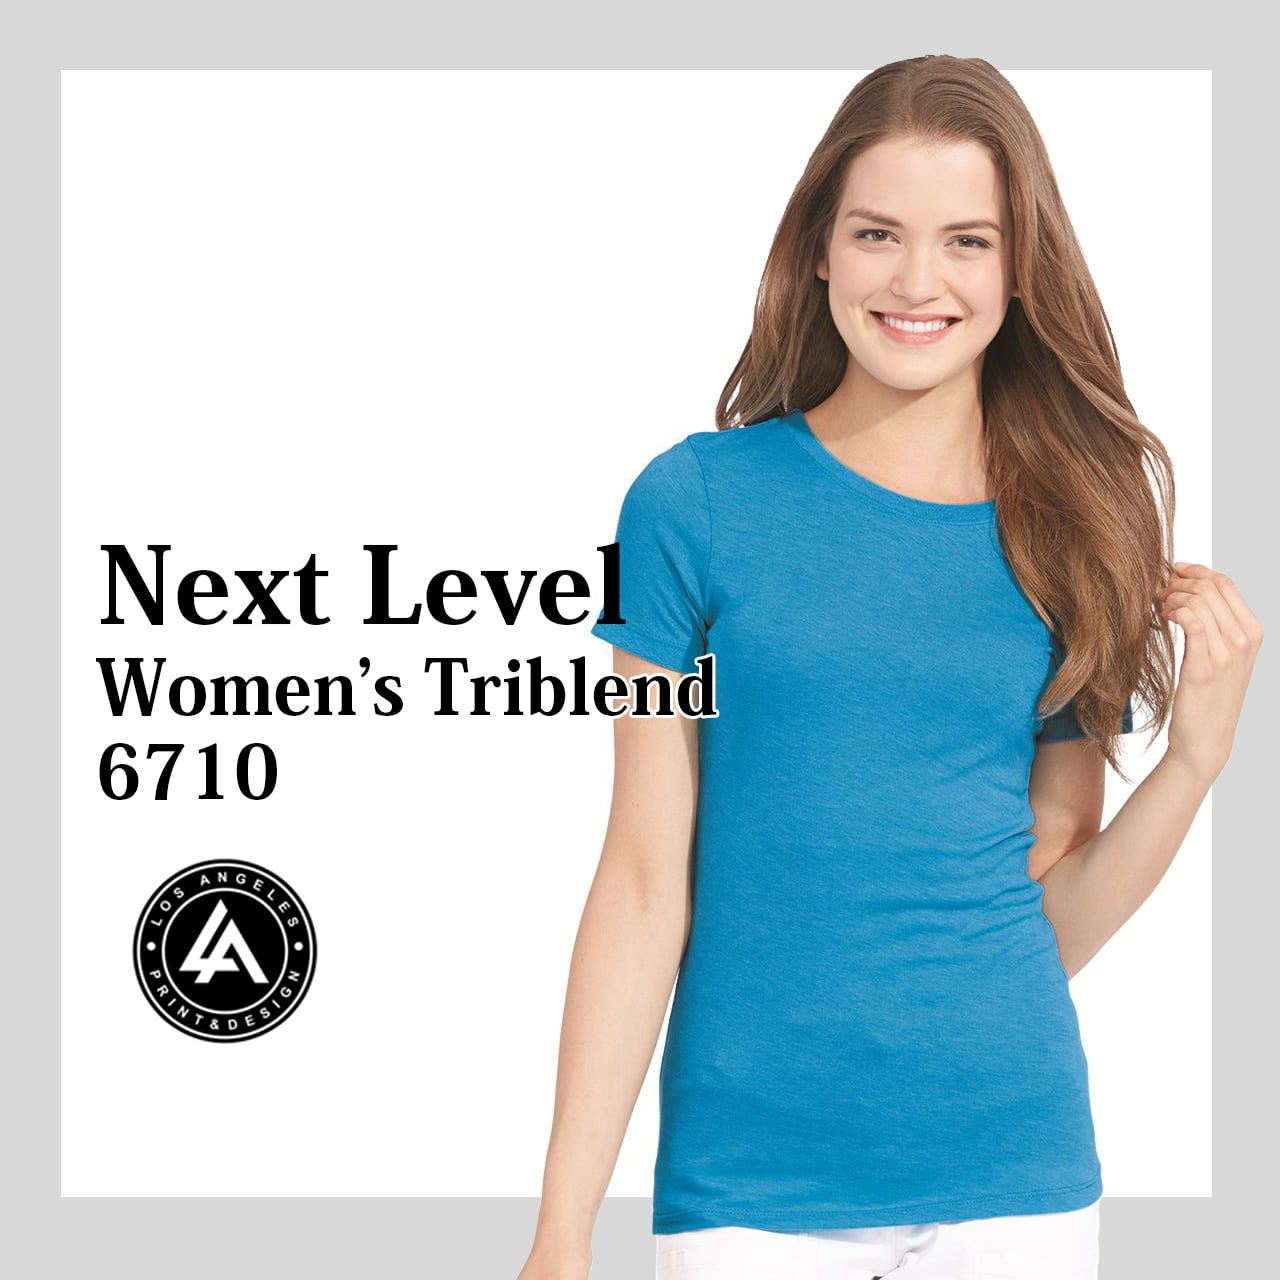 669efea2 Top 4 Blank Women's Quality T Shirts for Printing - Best Crew Neck Tees